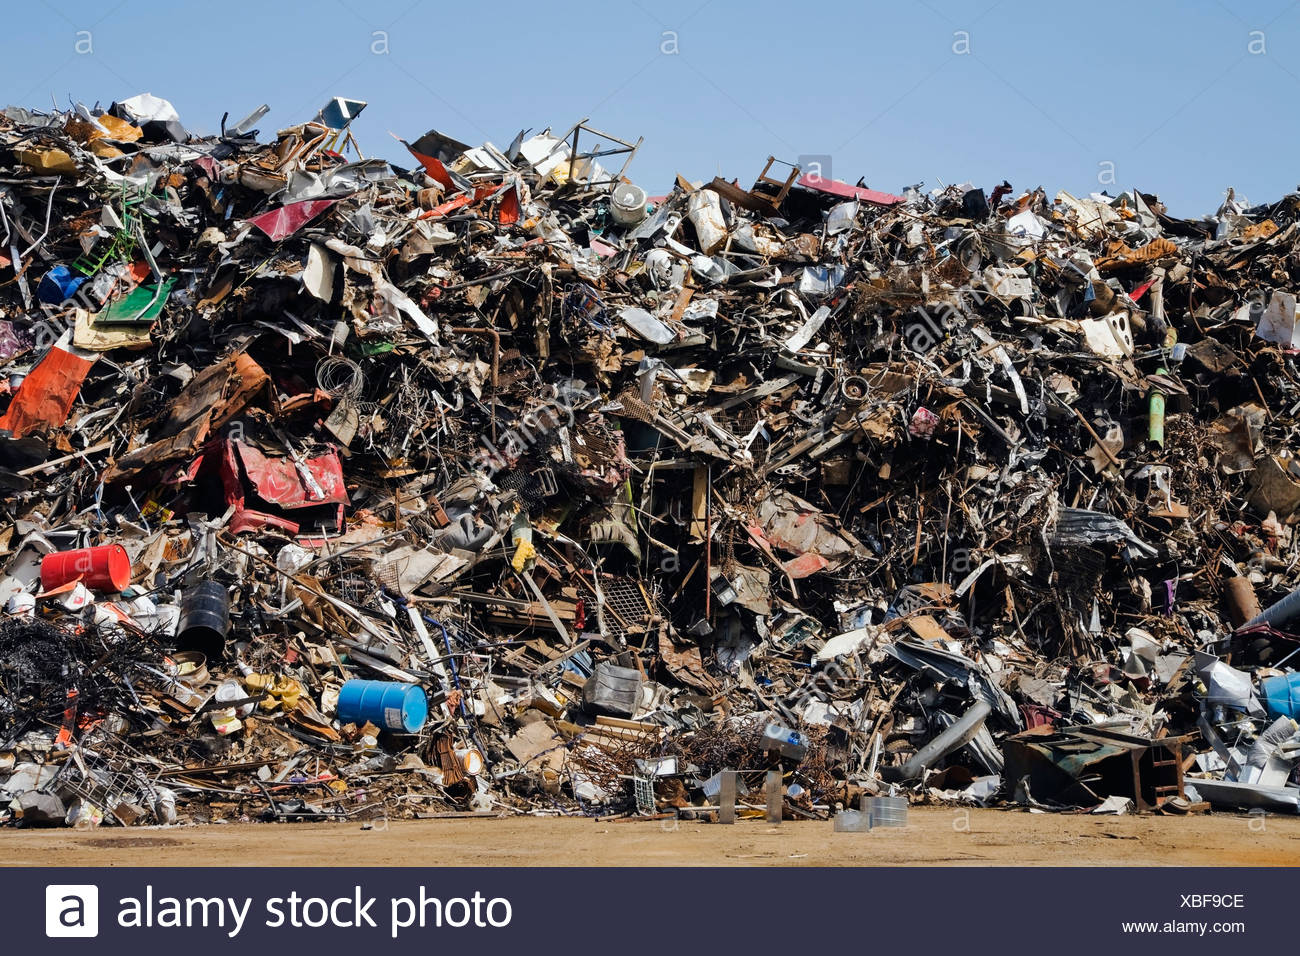 Quebec, Canada; Pile Of Discarded Household And Industrial Items At A Scrap Metal Recycling Junkyard - Stock Image